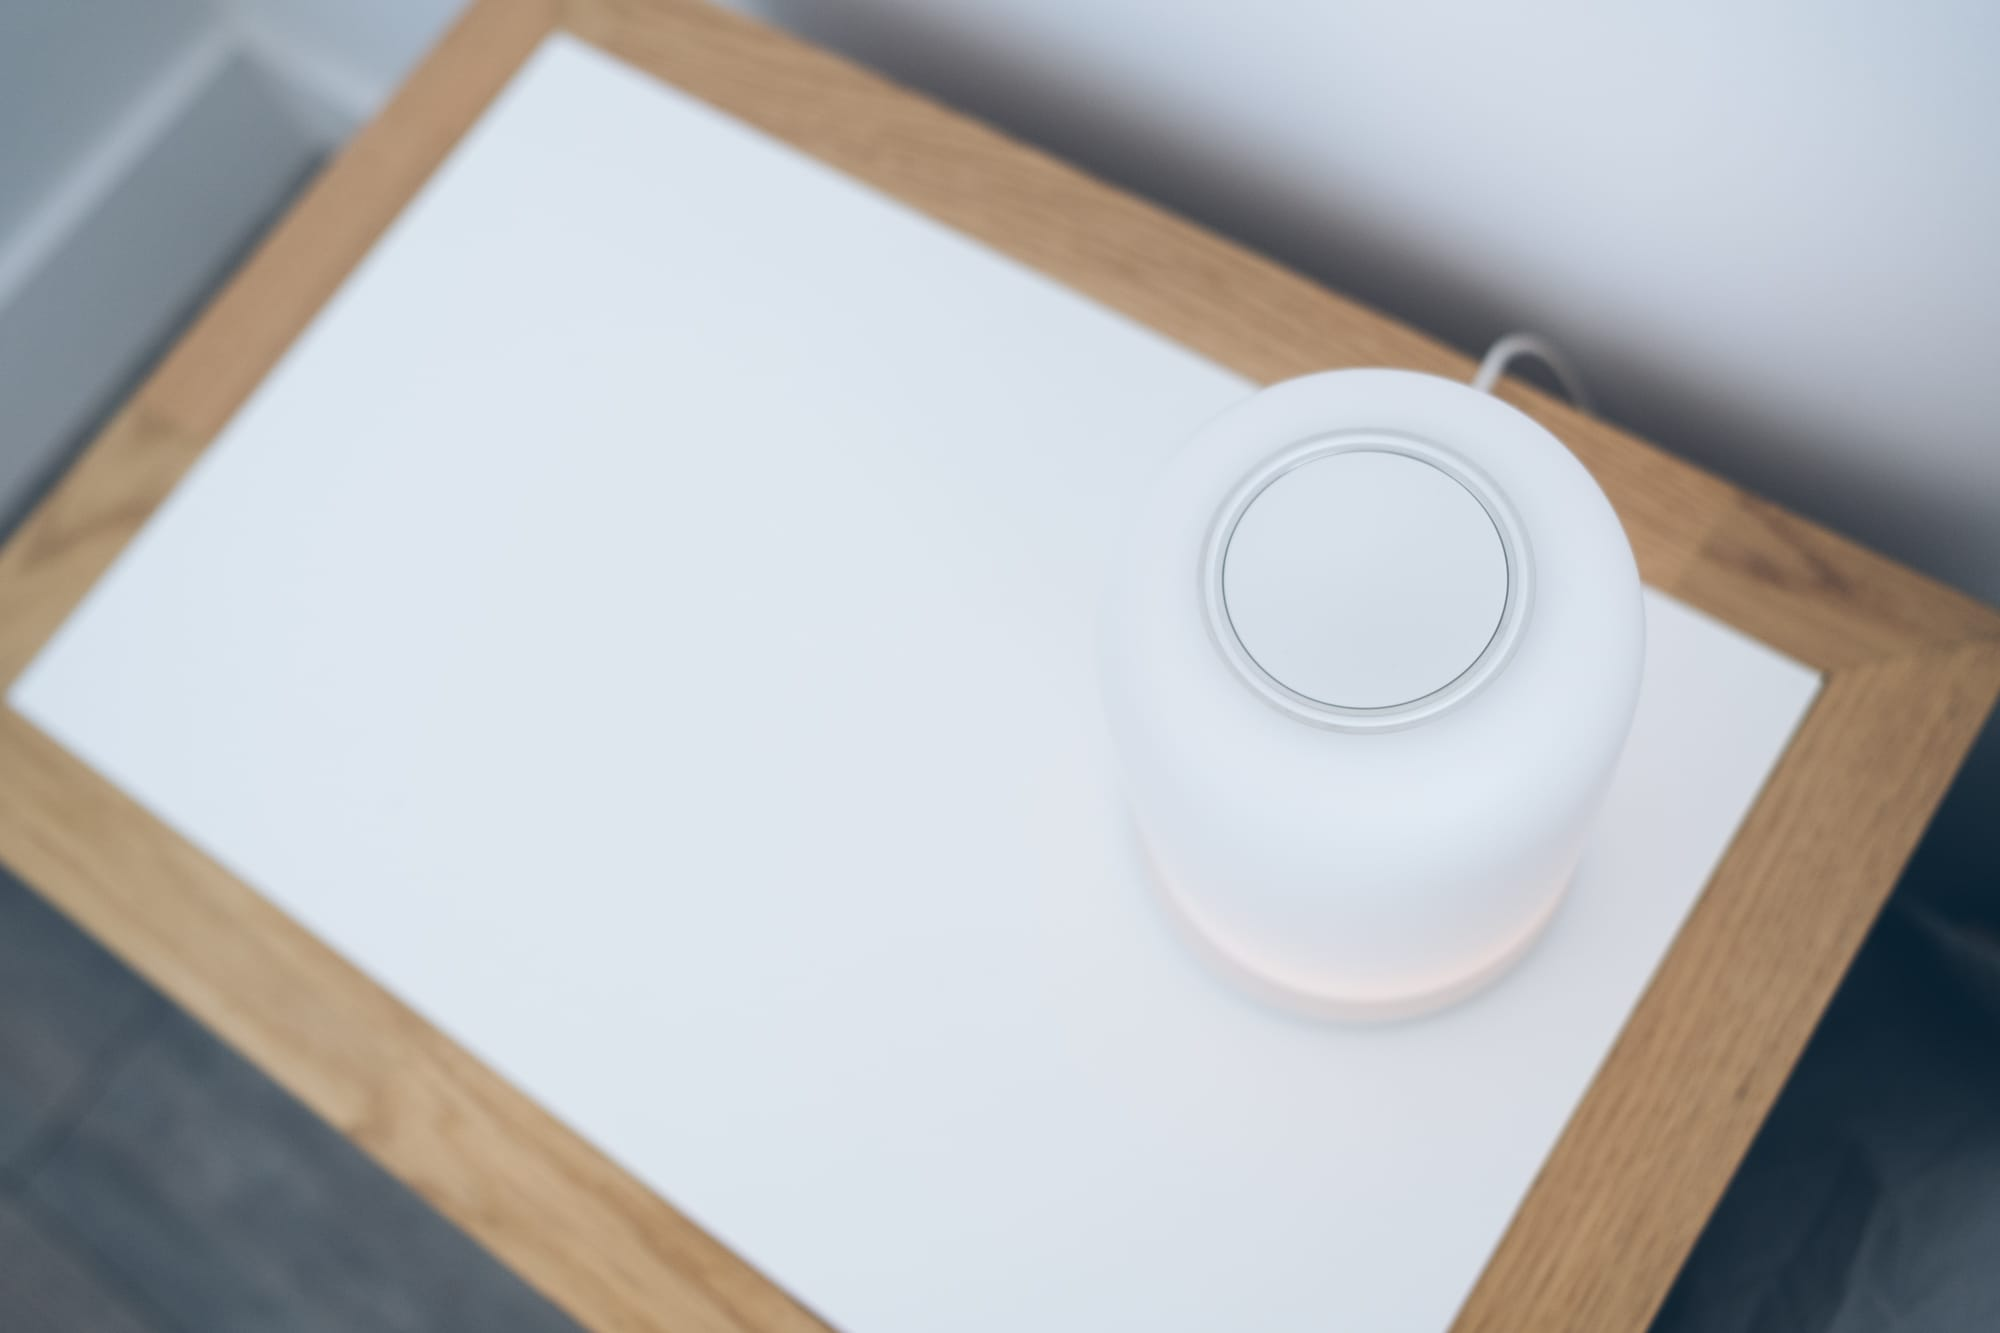 top viiew of lamp showcasing the big round button at the top